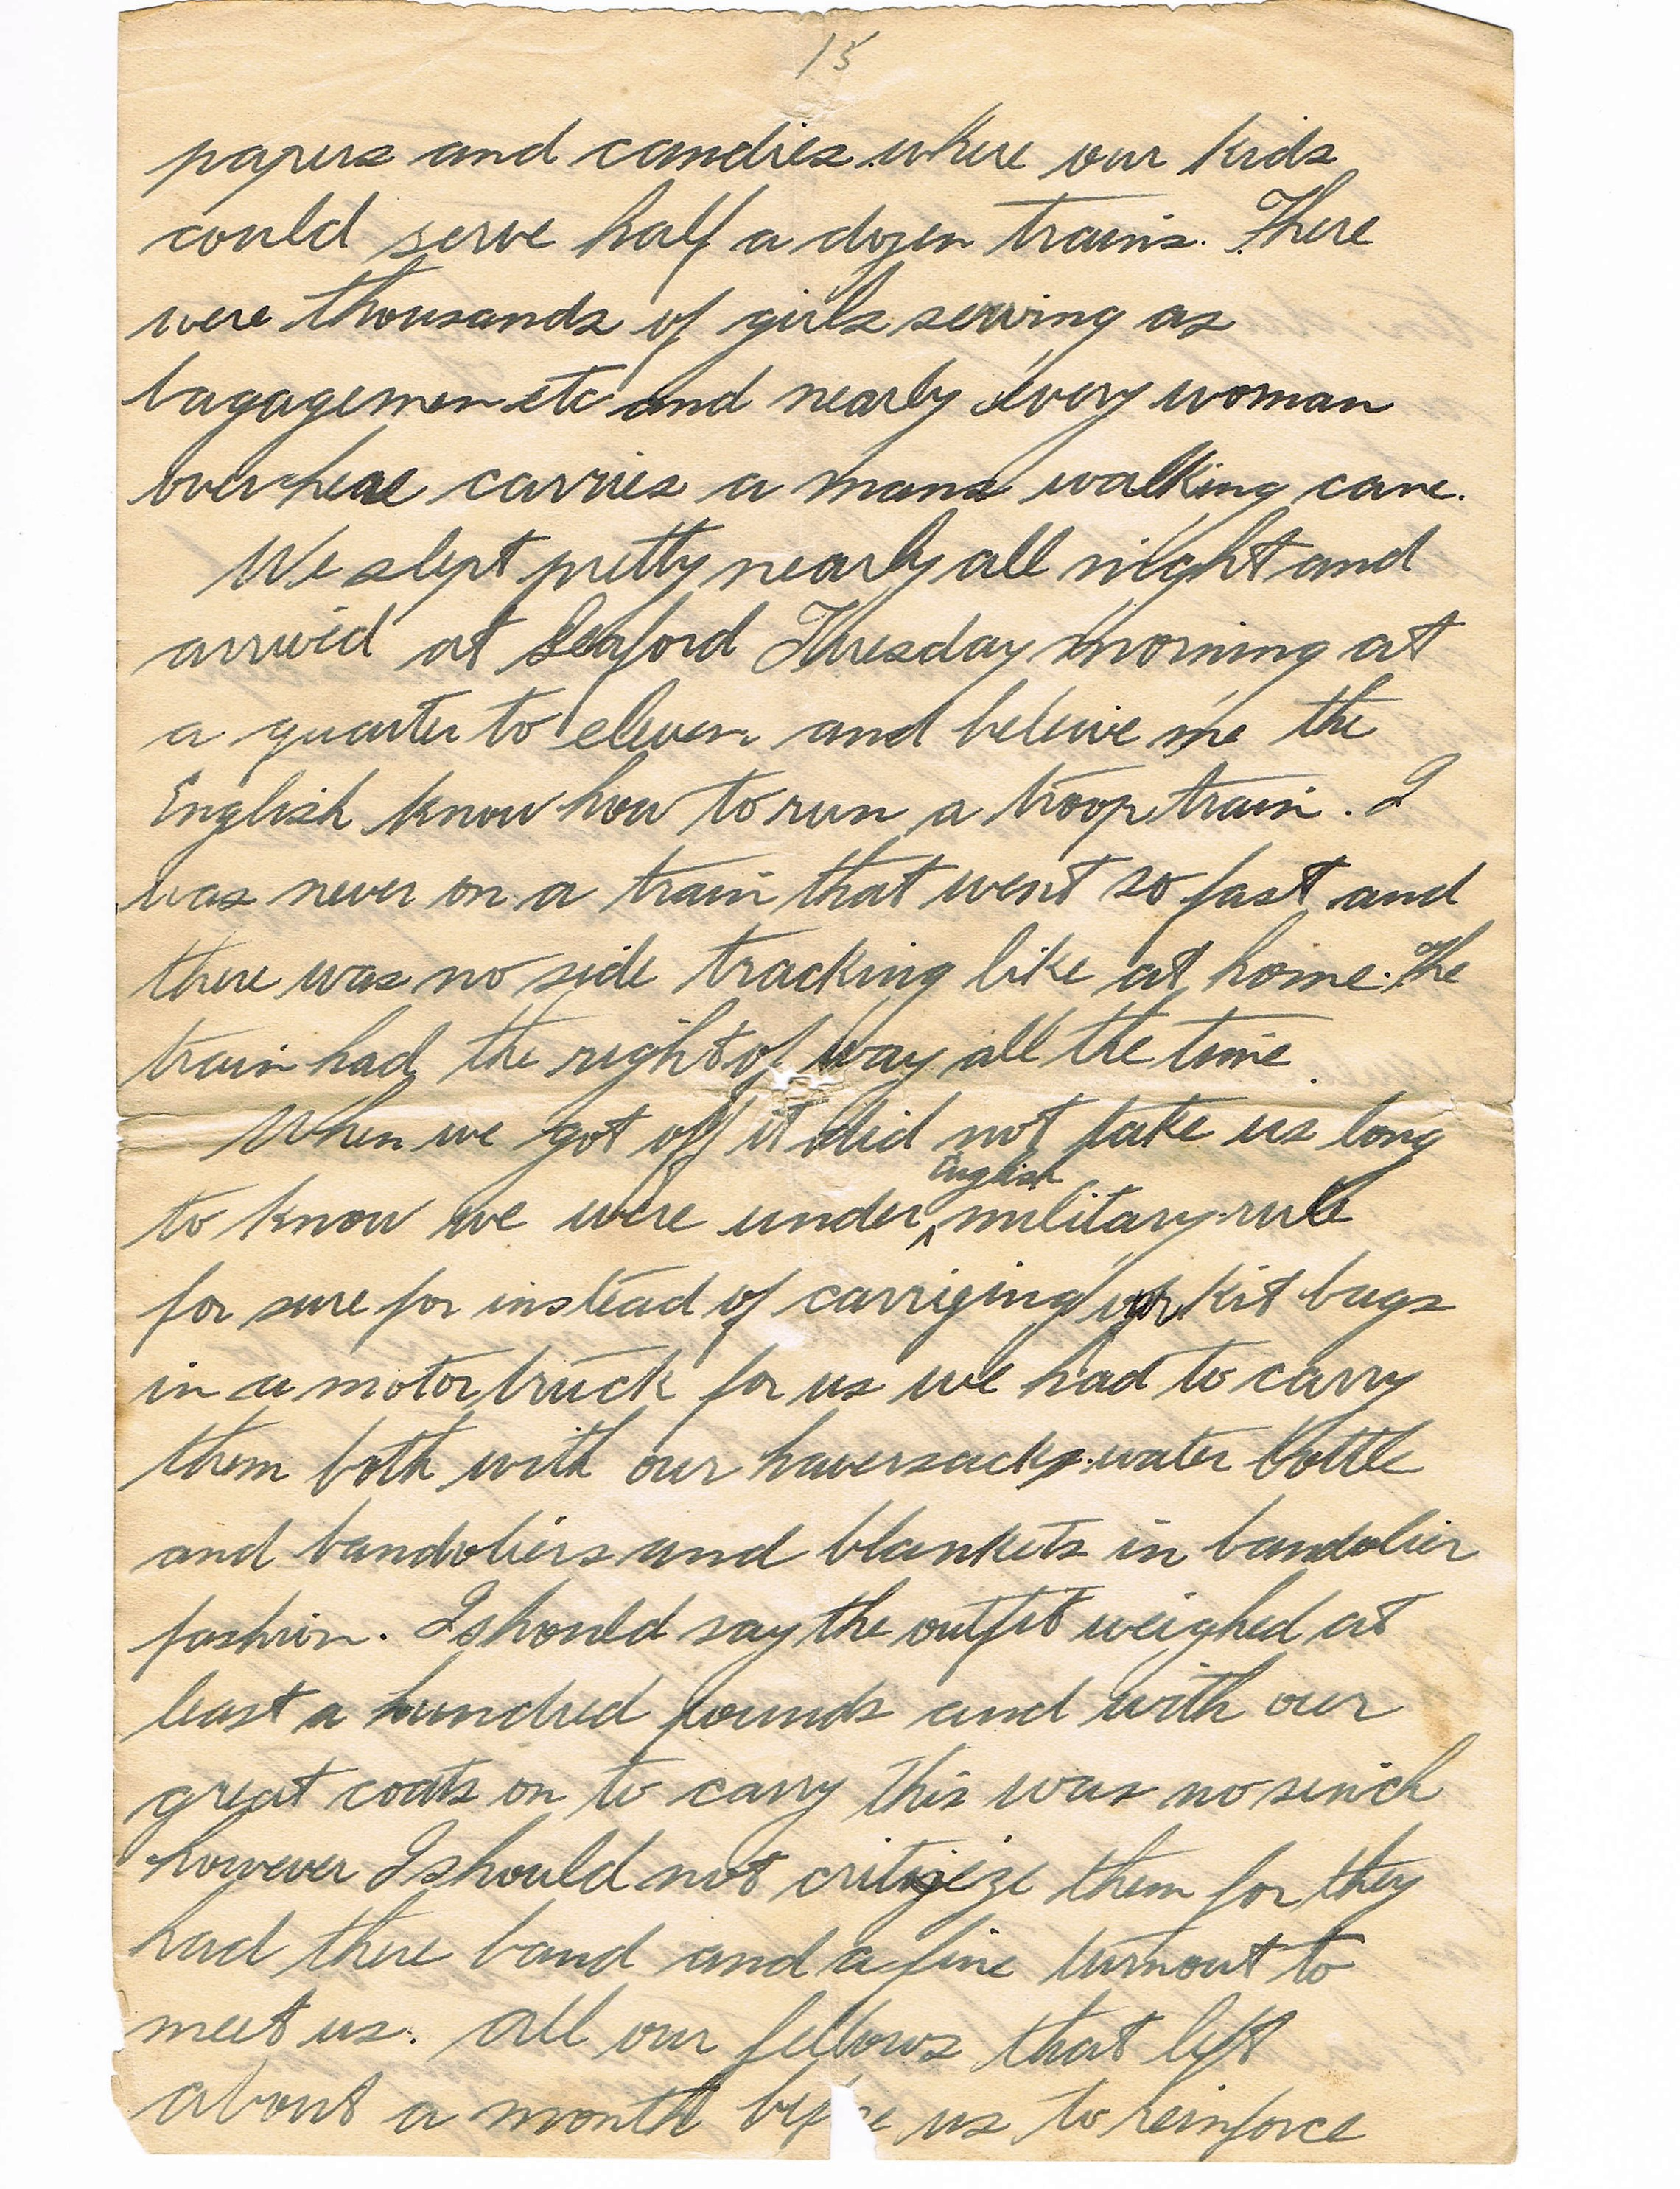 15th page of handwritten letter